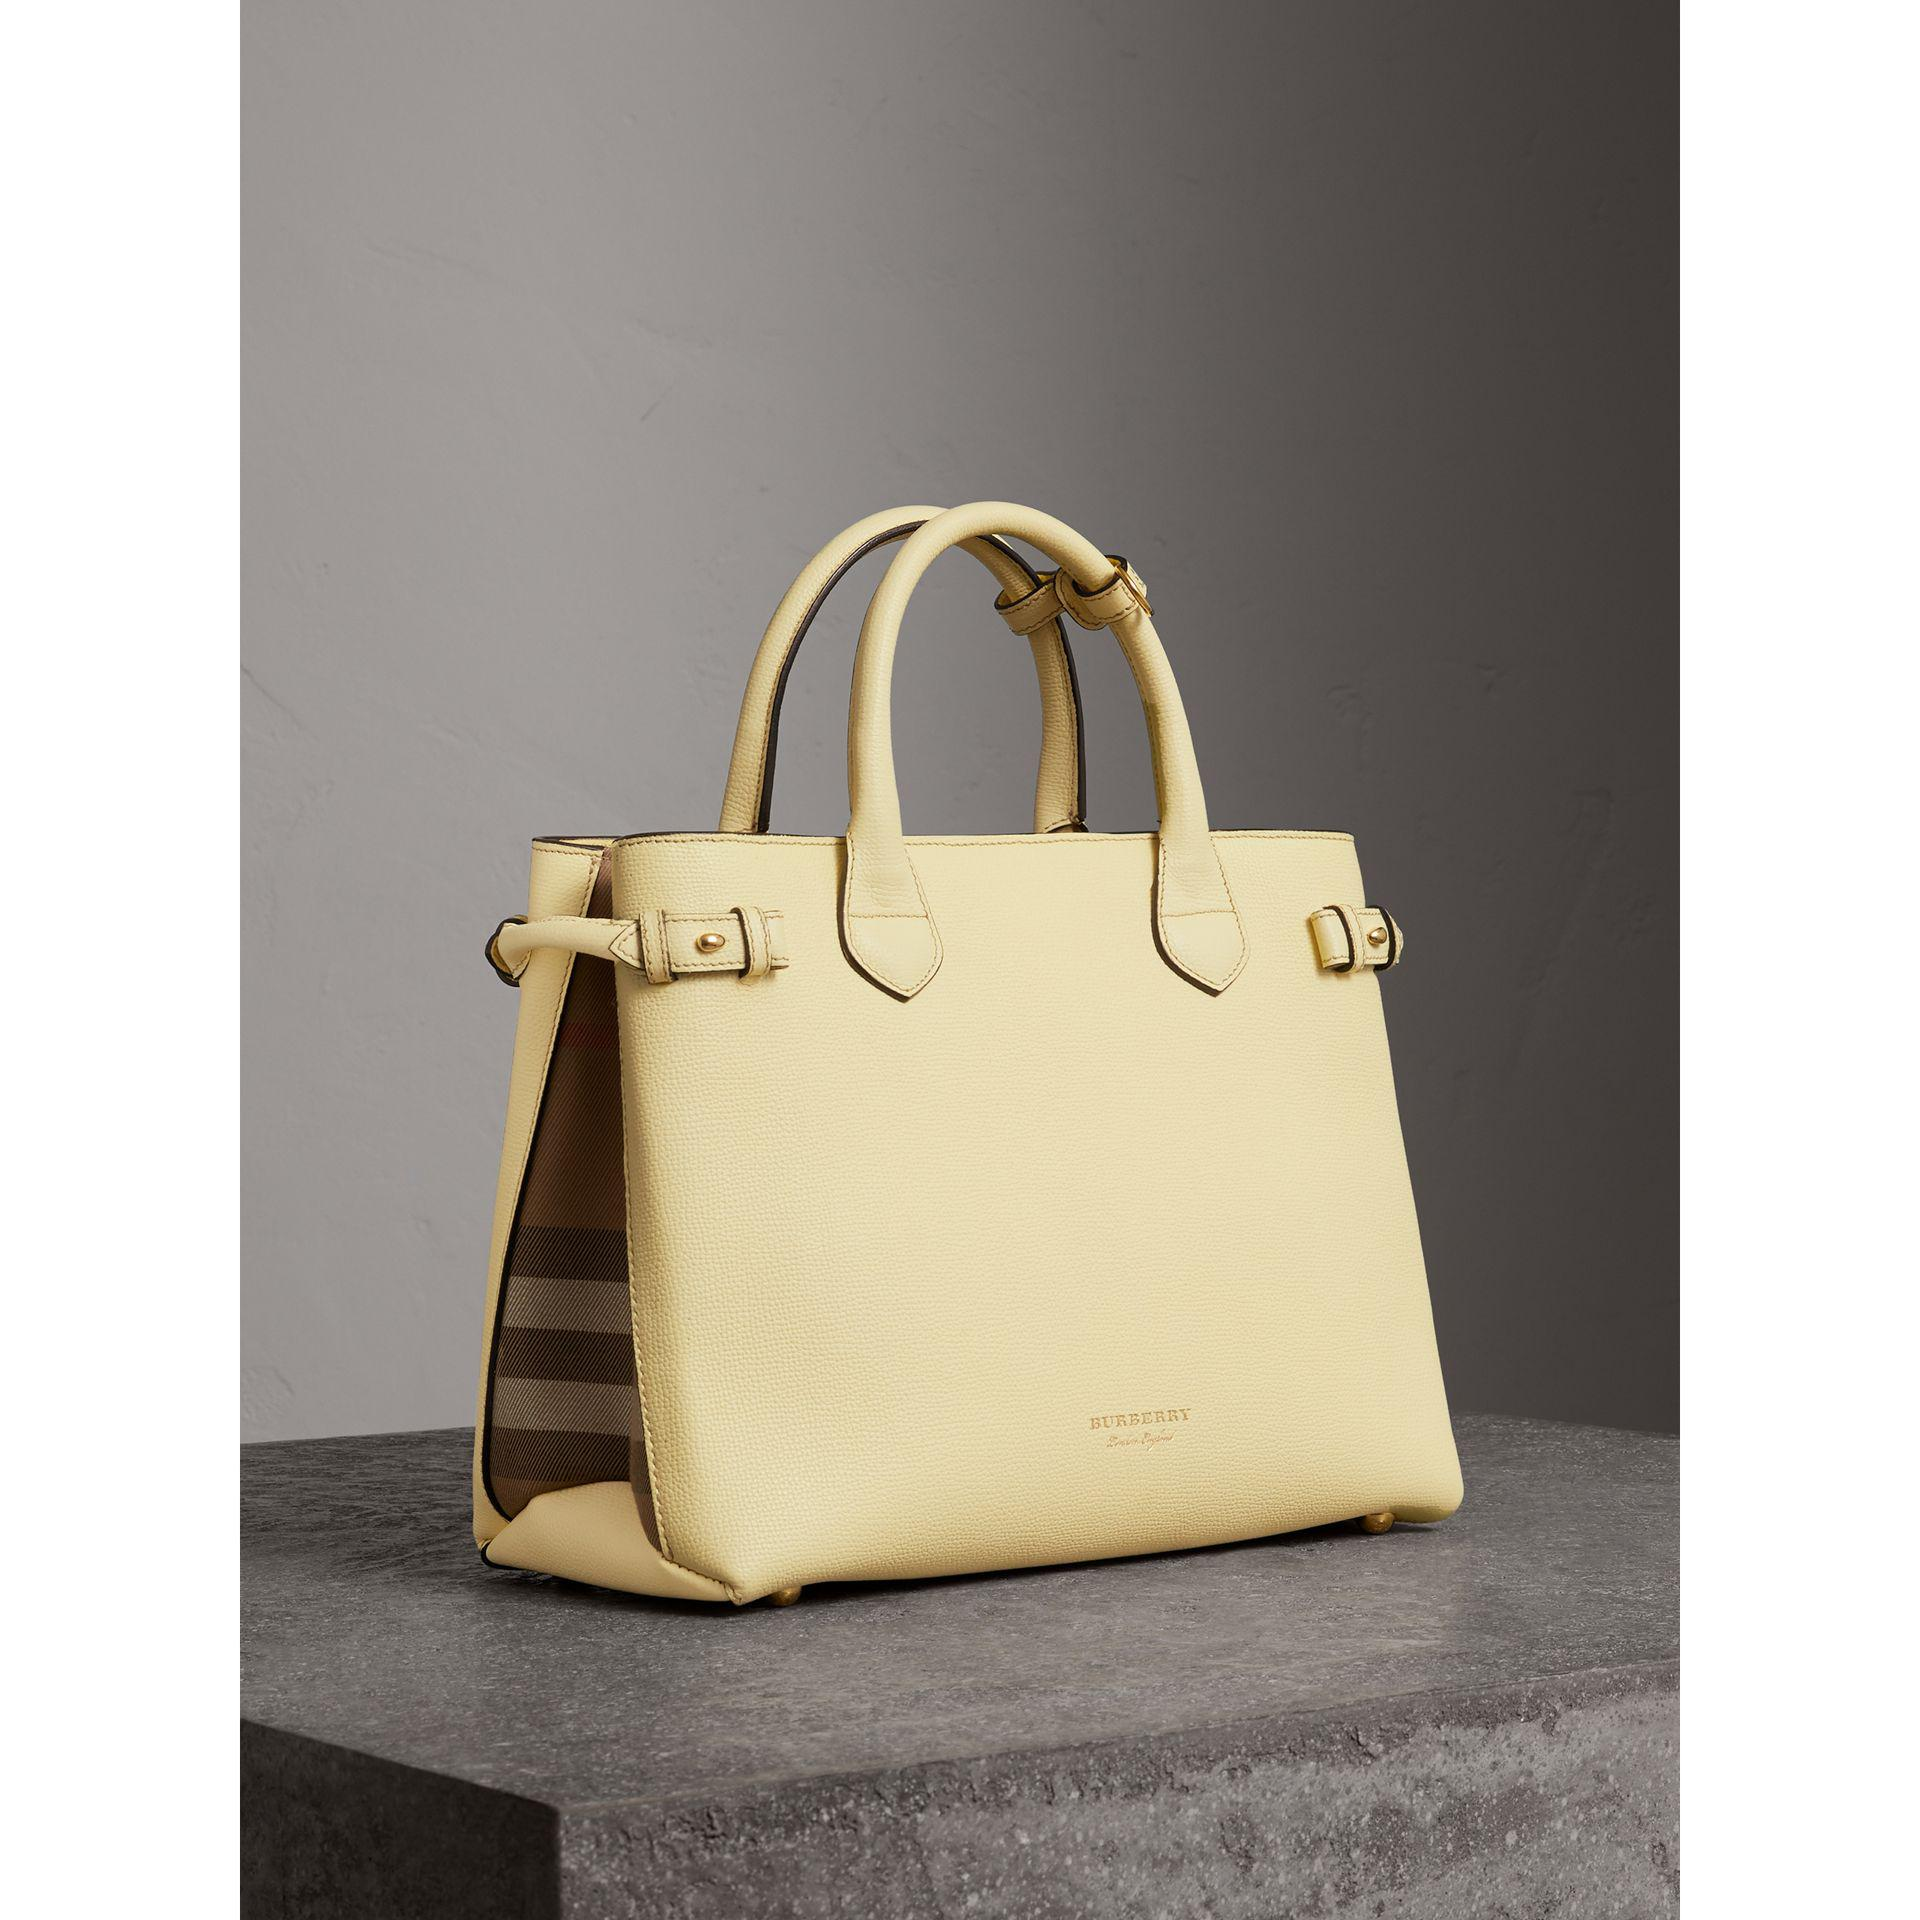 7f8f0e097c70 Lyst - Burberry The Medium Banner In Leather And House Check ...